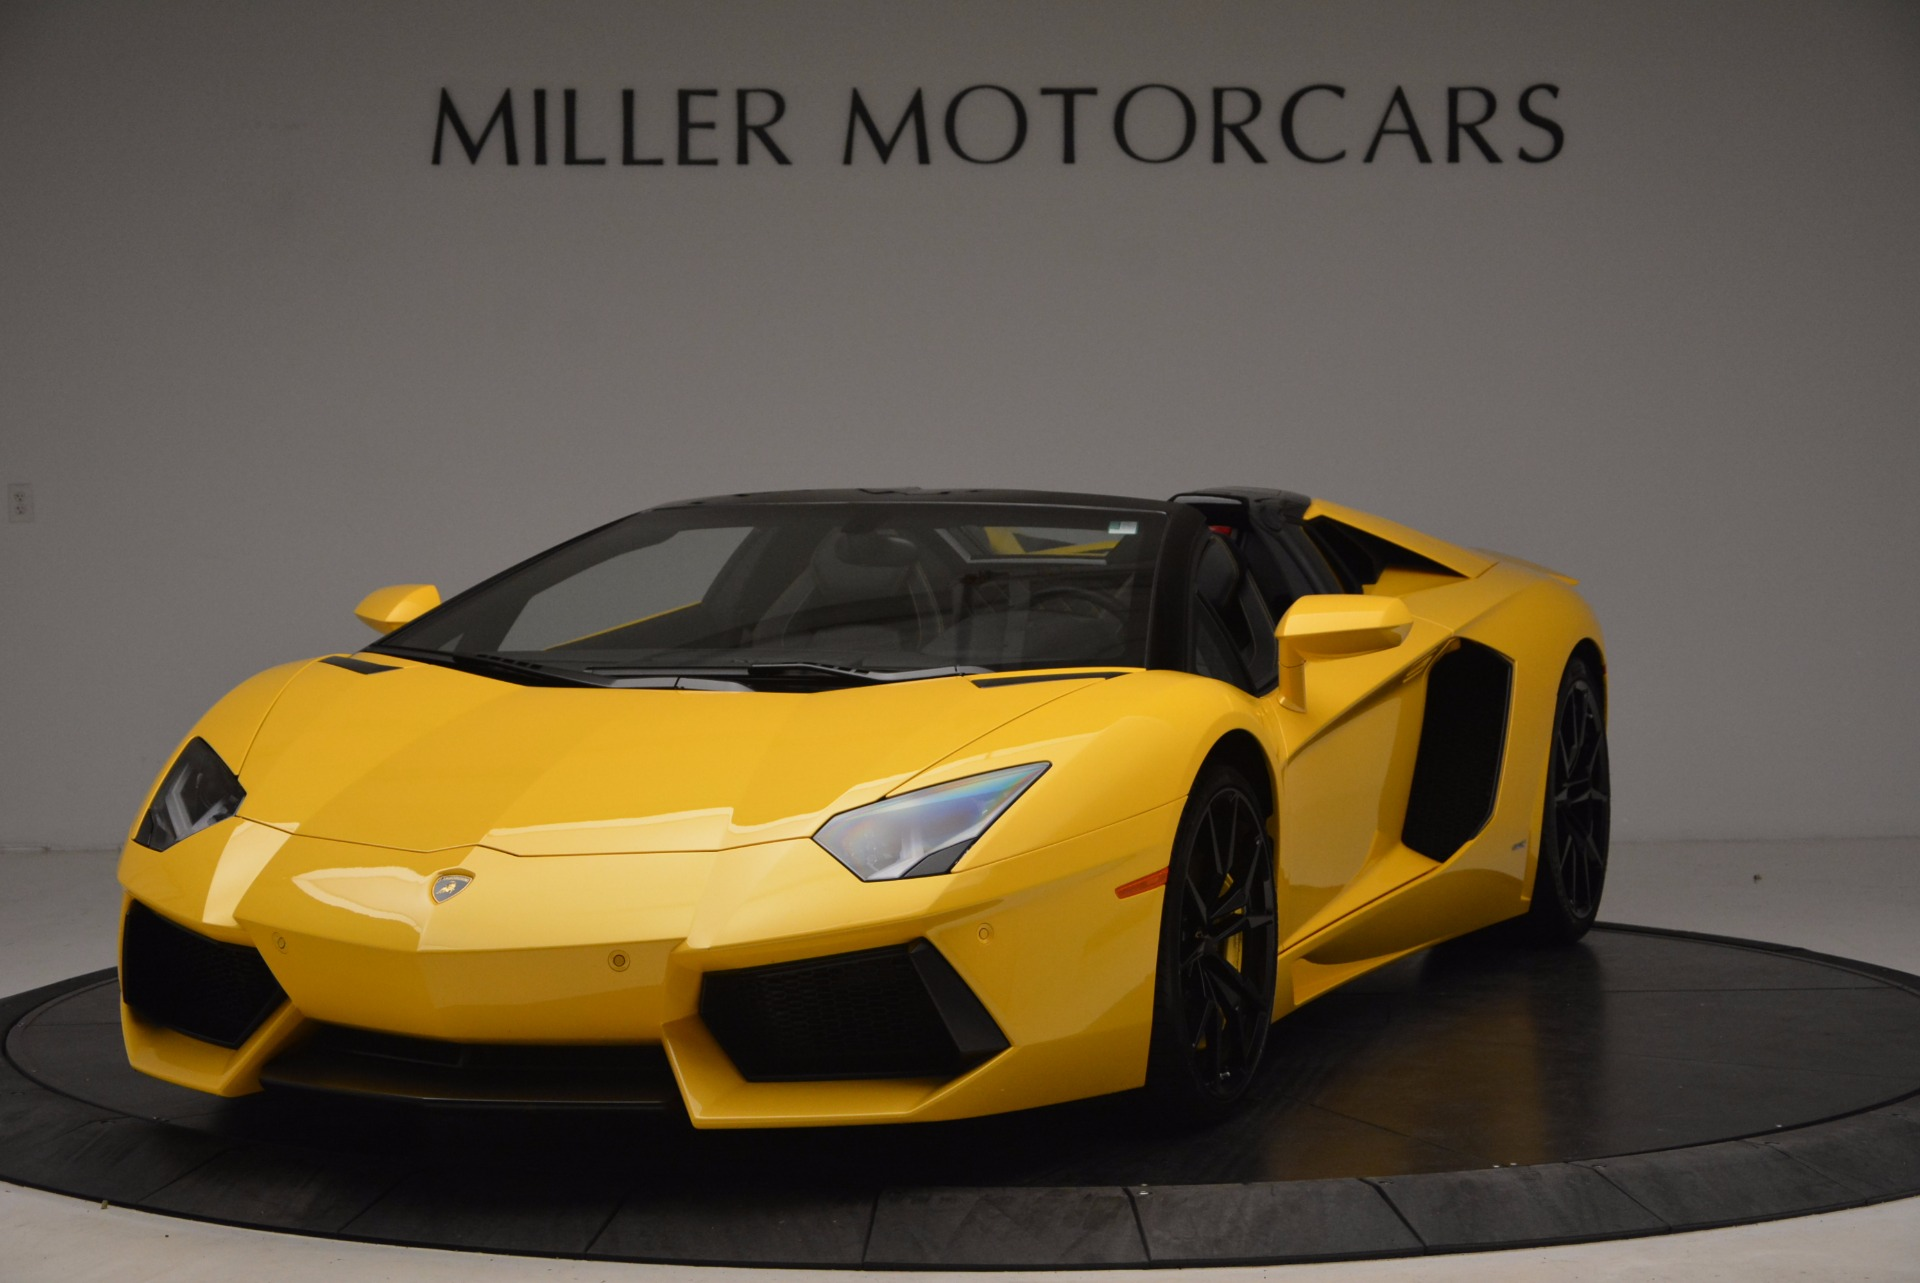 Used 2015 Lamborghini Aventador LP 700-4 Roadster For Sale In Westport, CT 1774_main